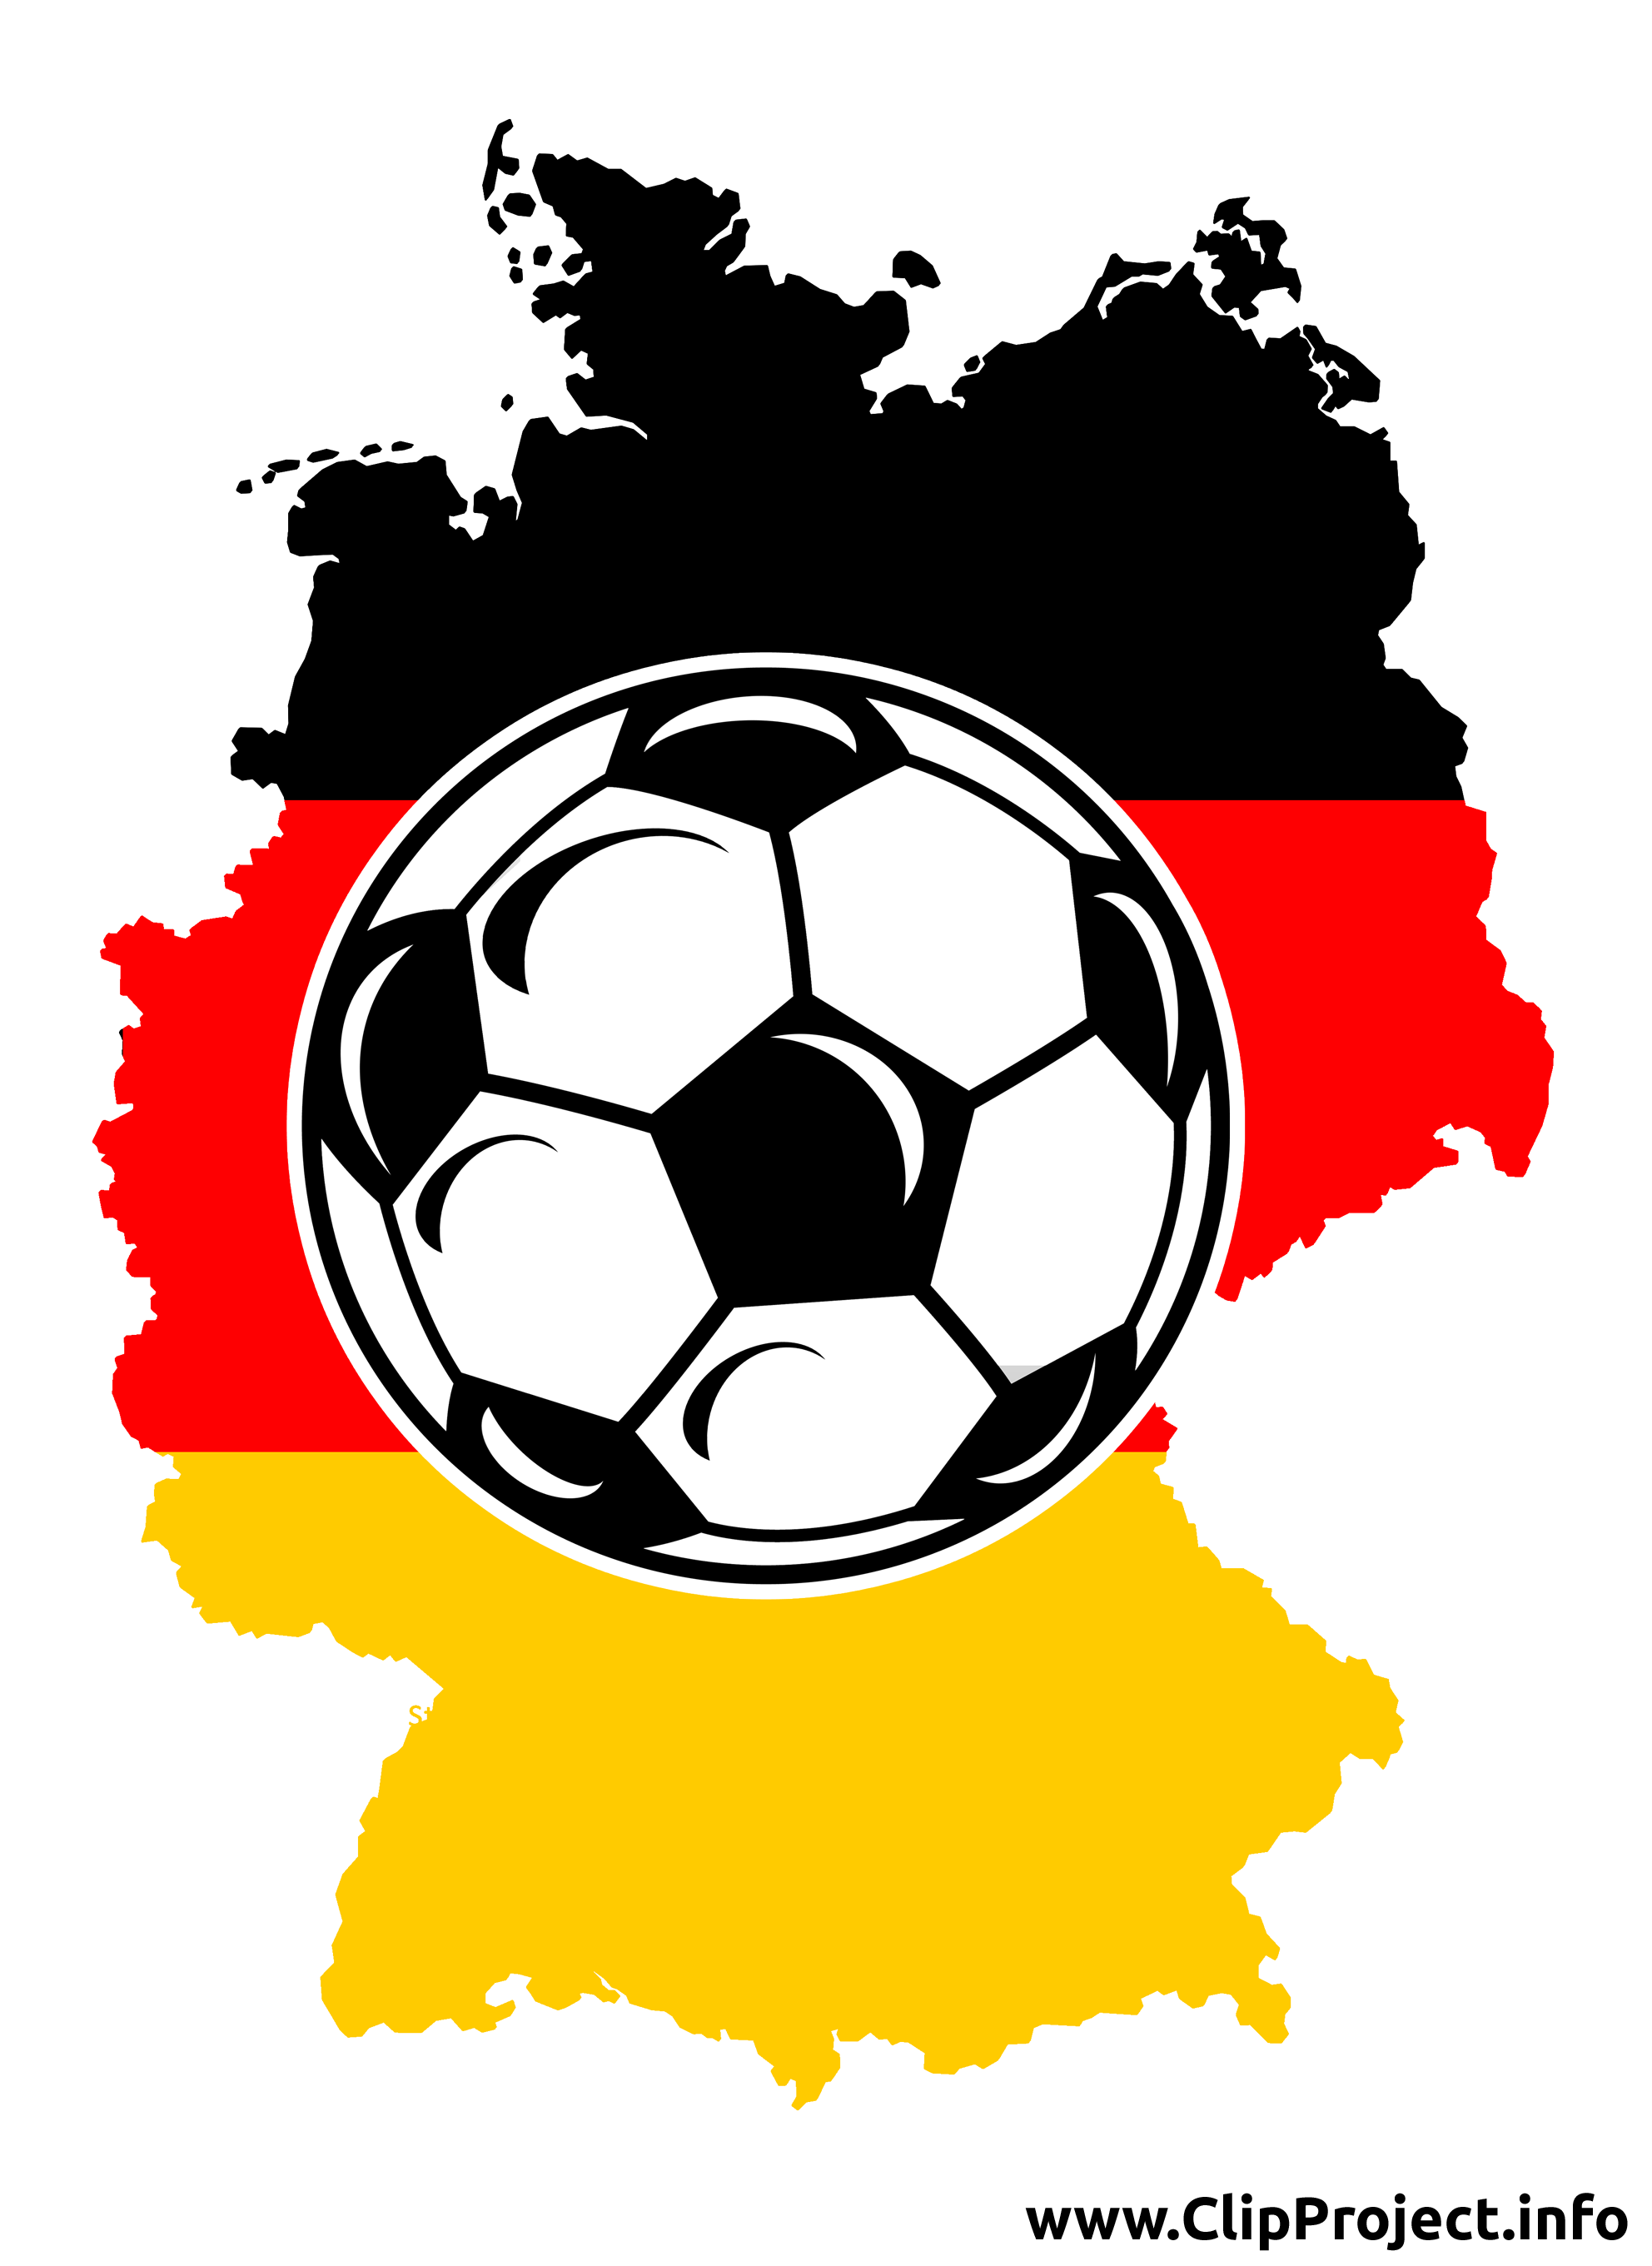 Football image - Allemagne illustration